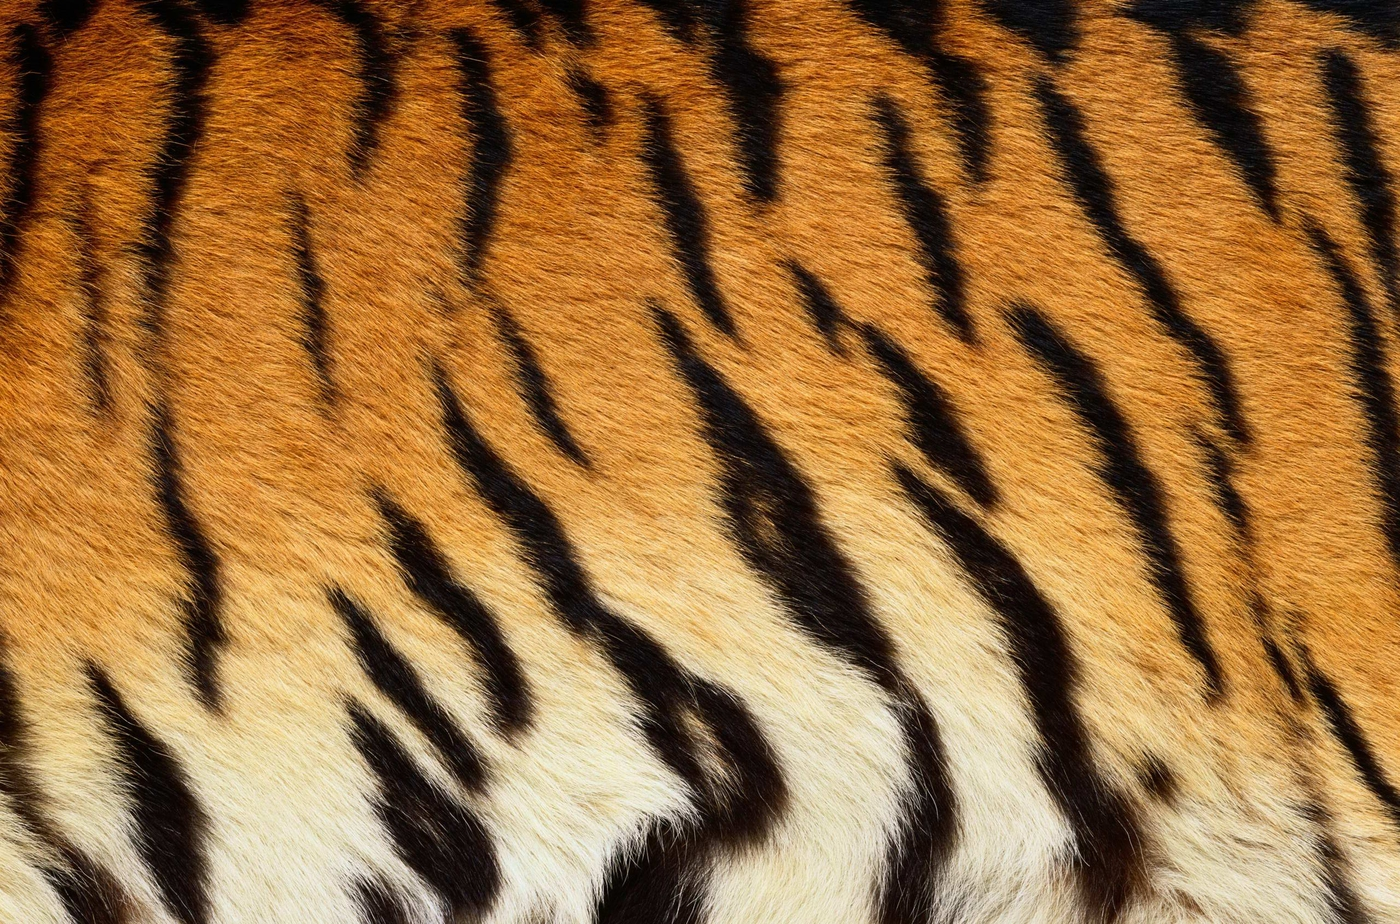 zhivotnoe-Animal fur textures (86)